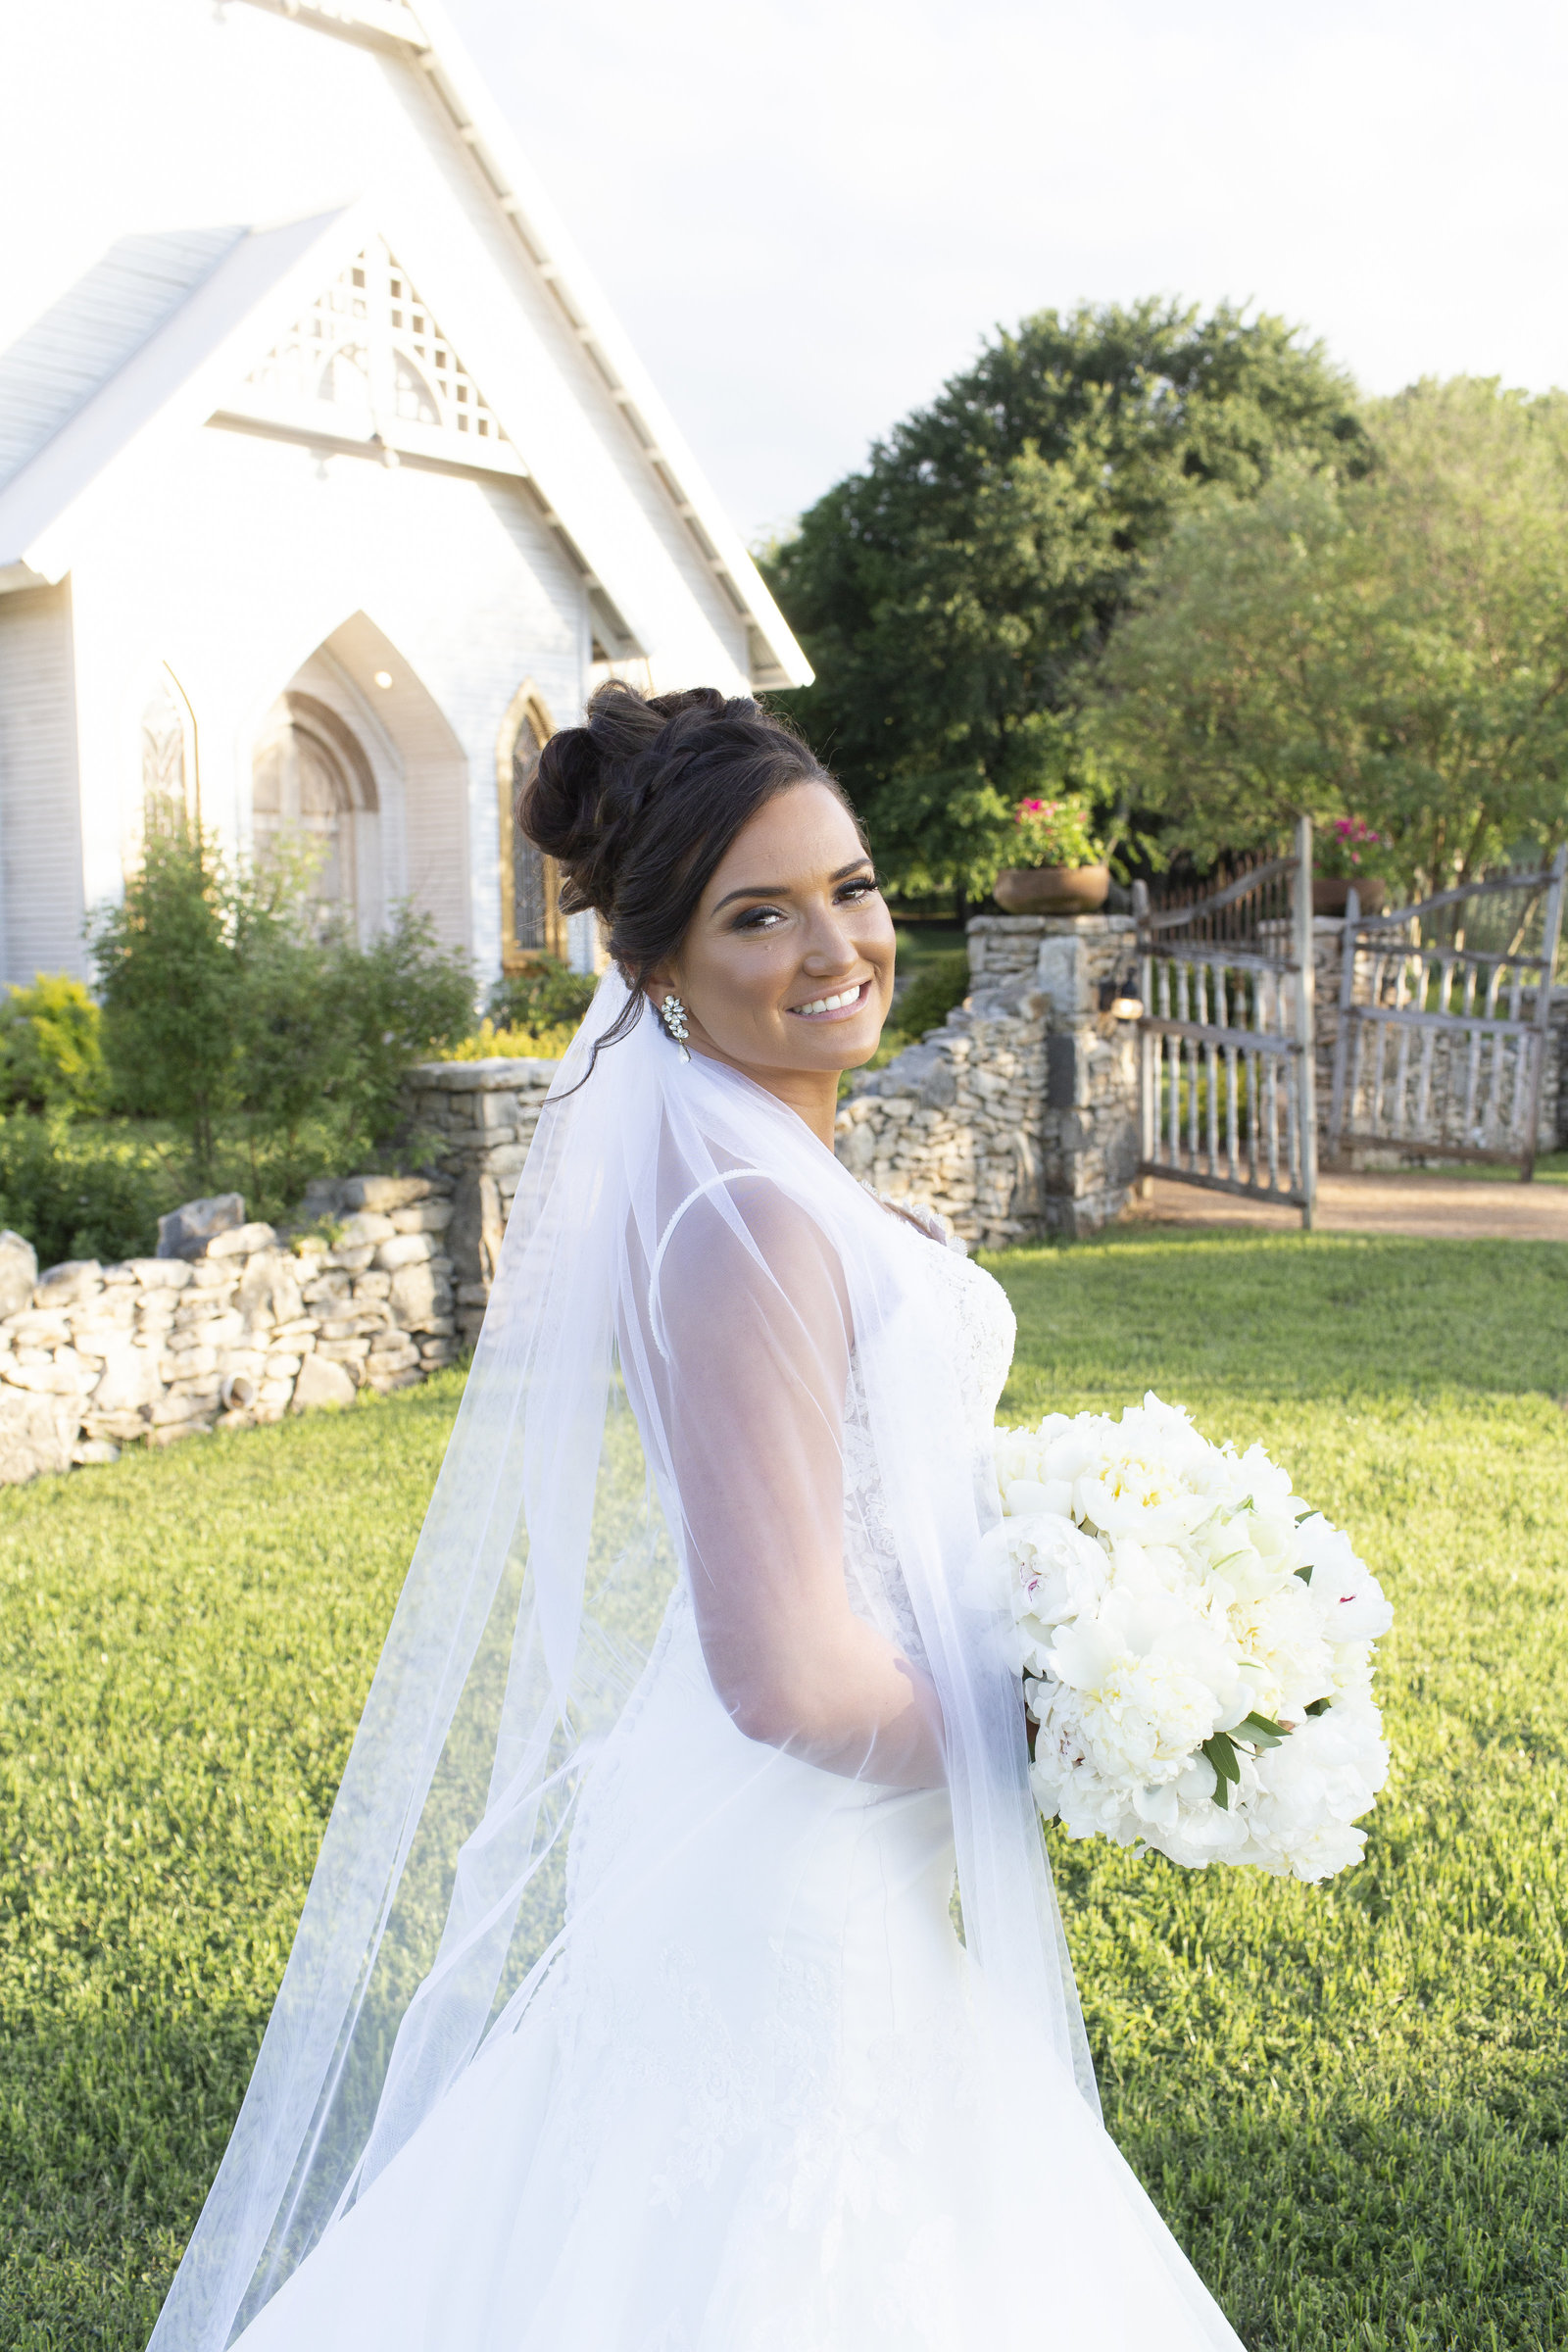 RMPhotography_PenaWedding_May4th2019_B+Gportraits-35